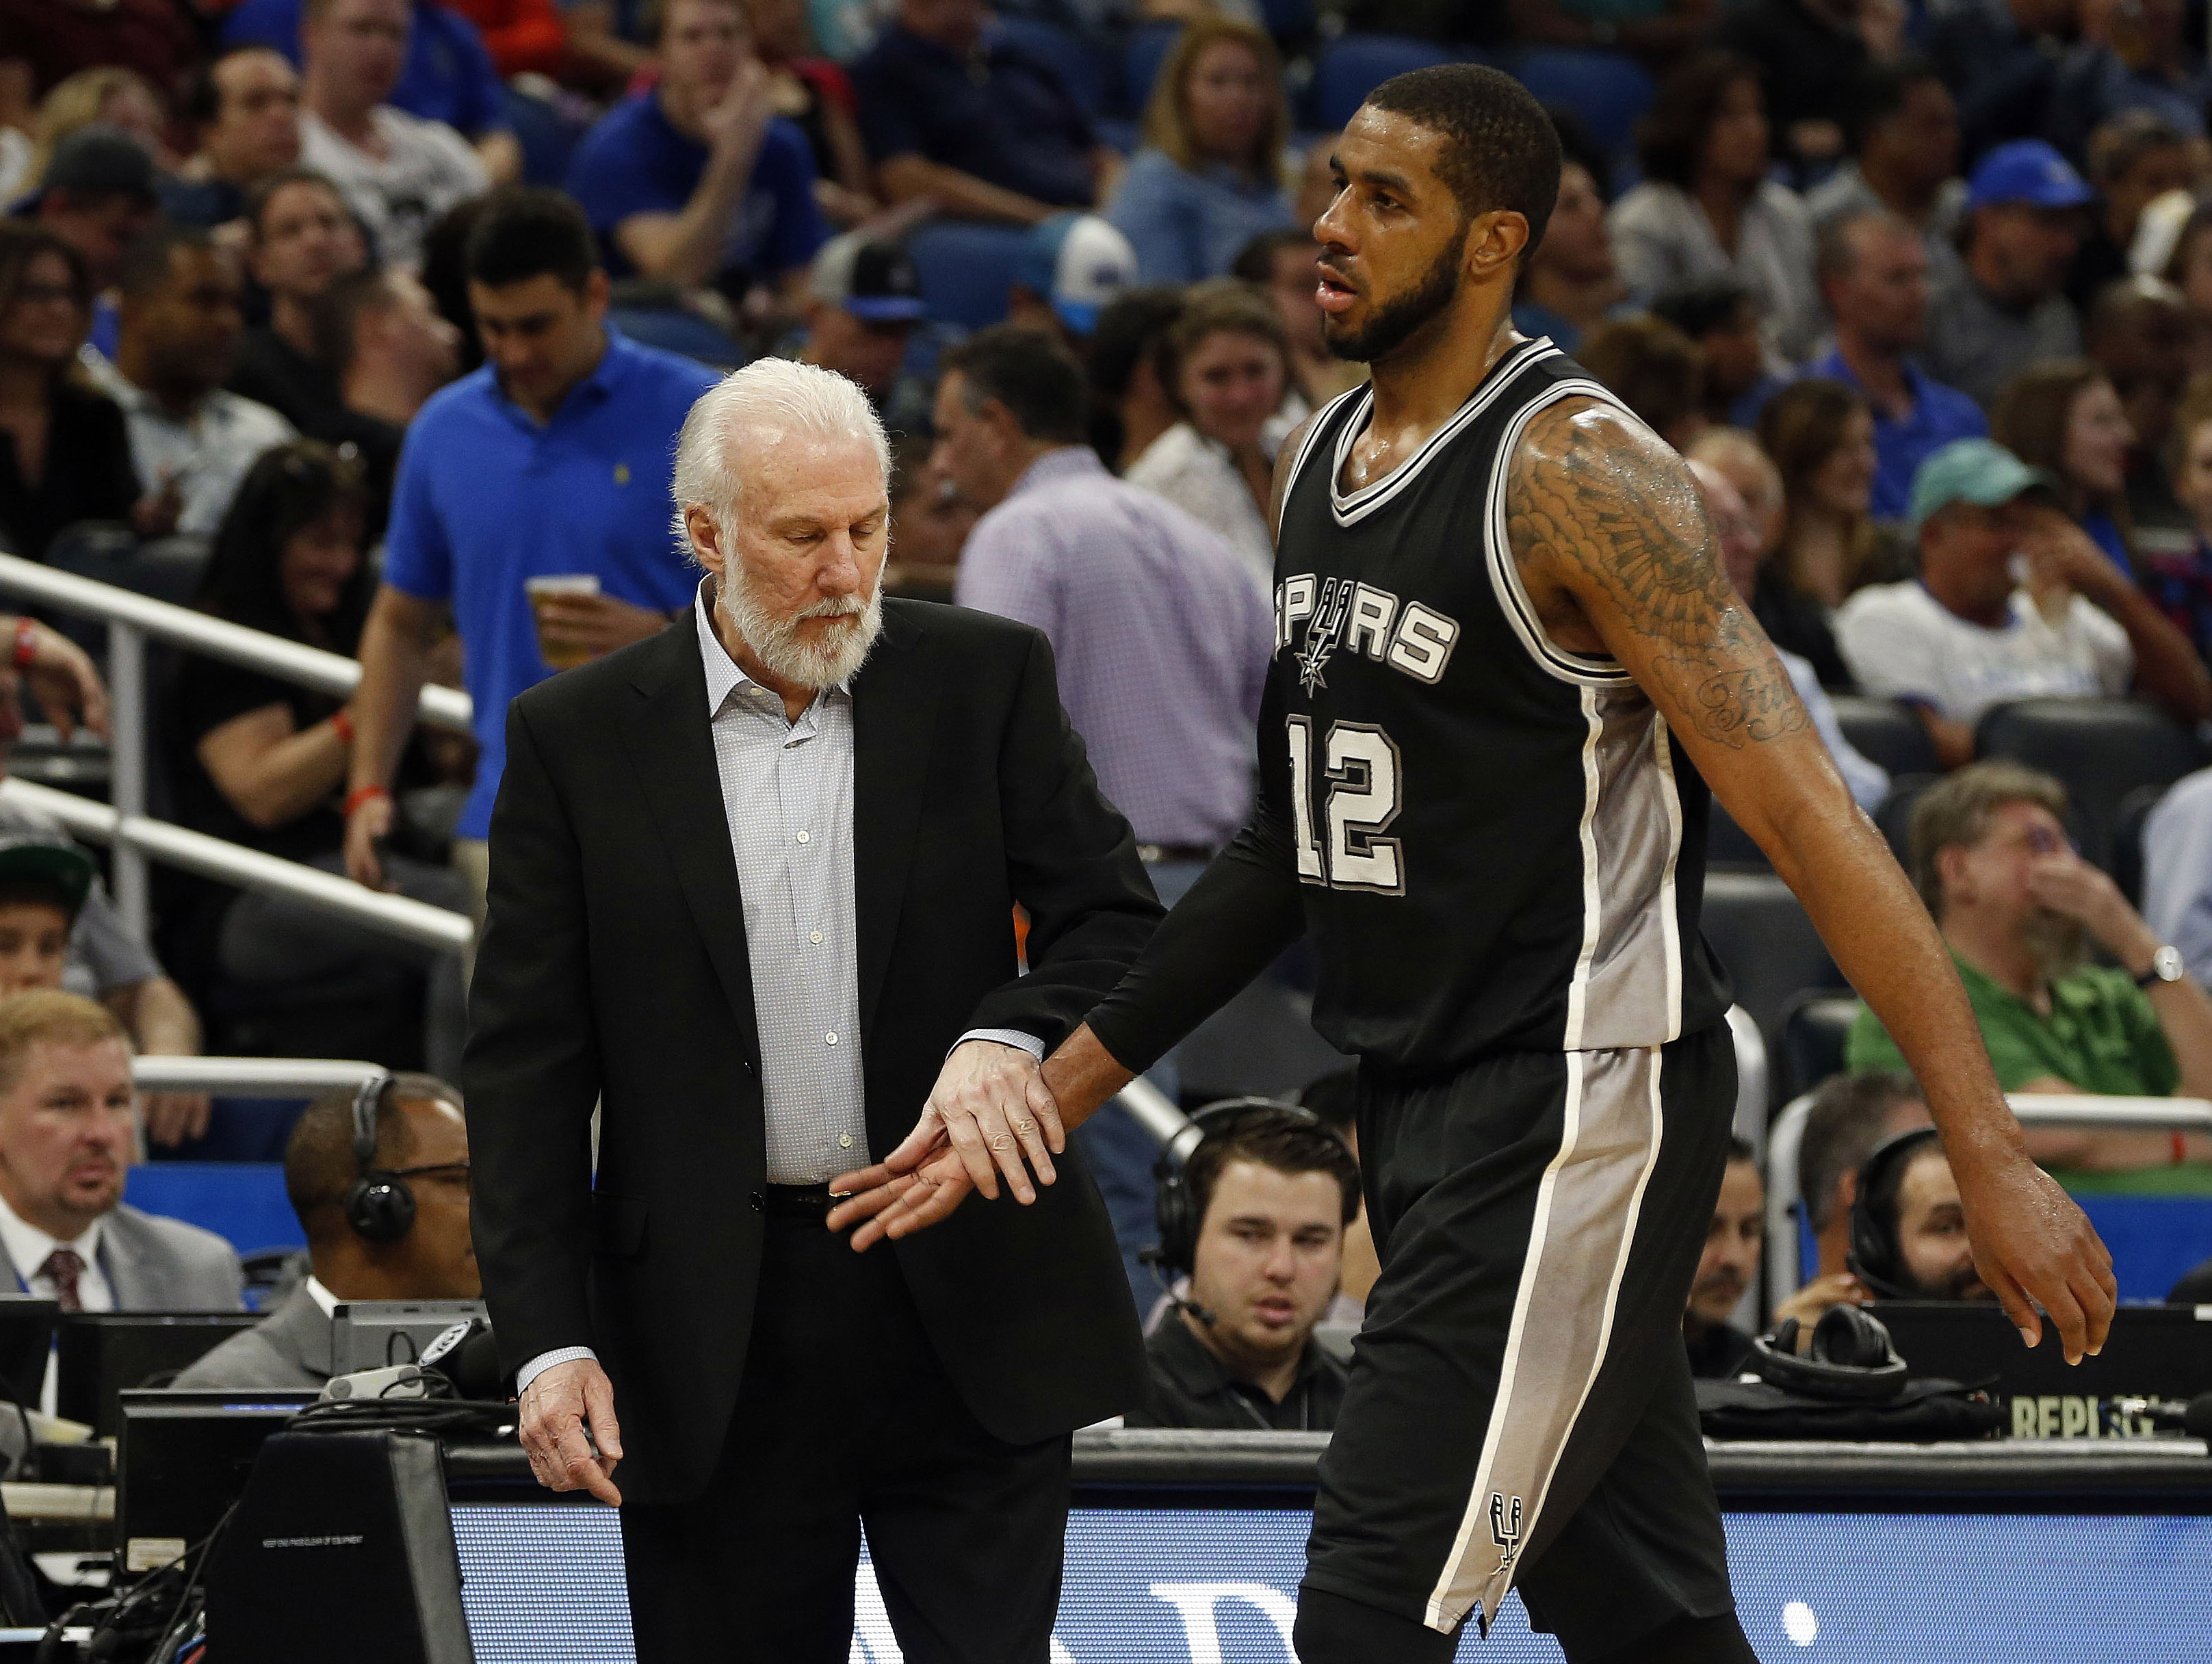 How did the Spurs play so well without Kawhi Leonard?